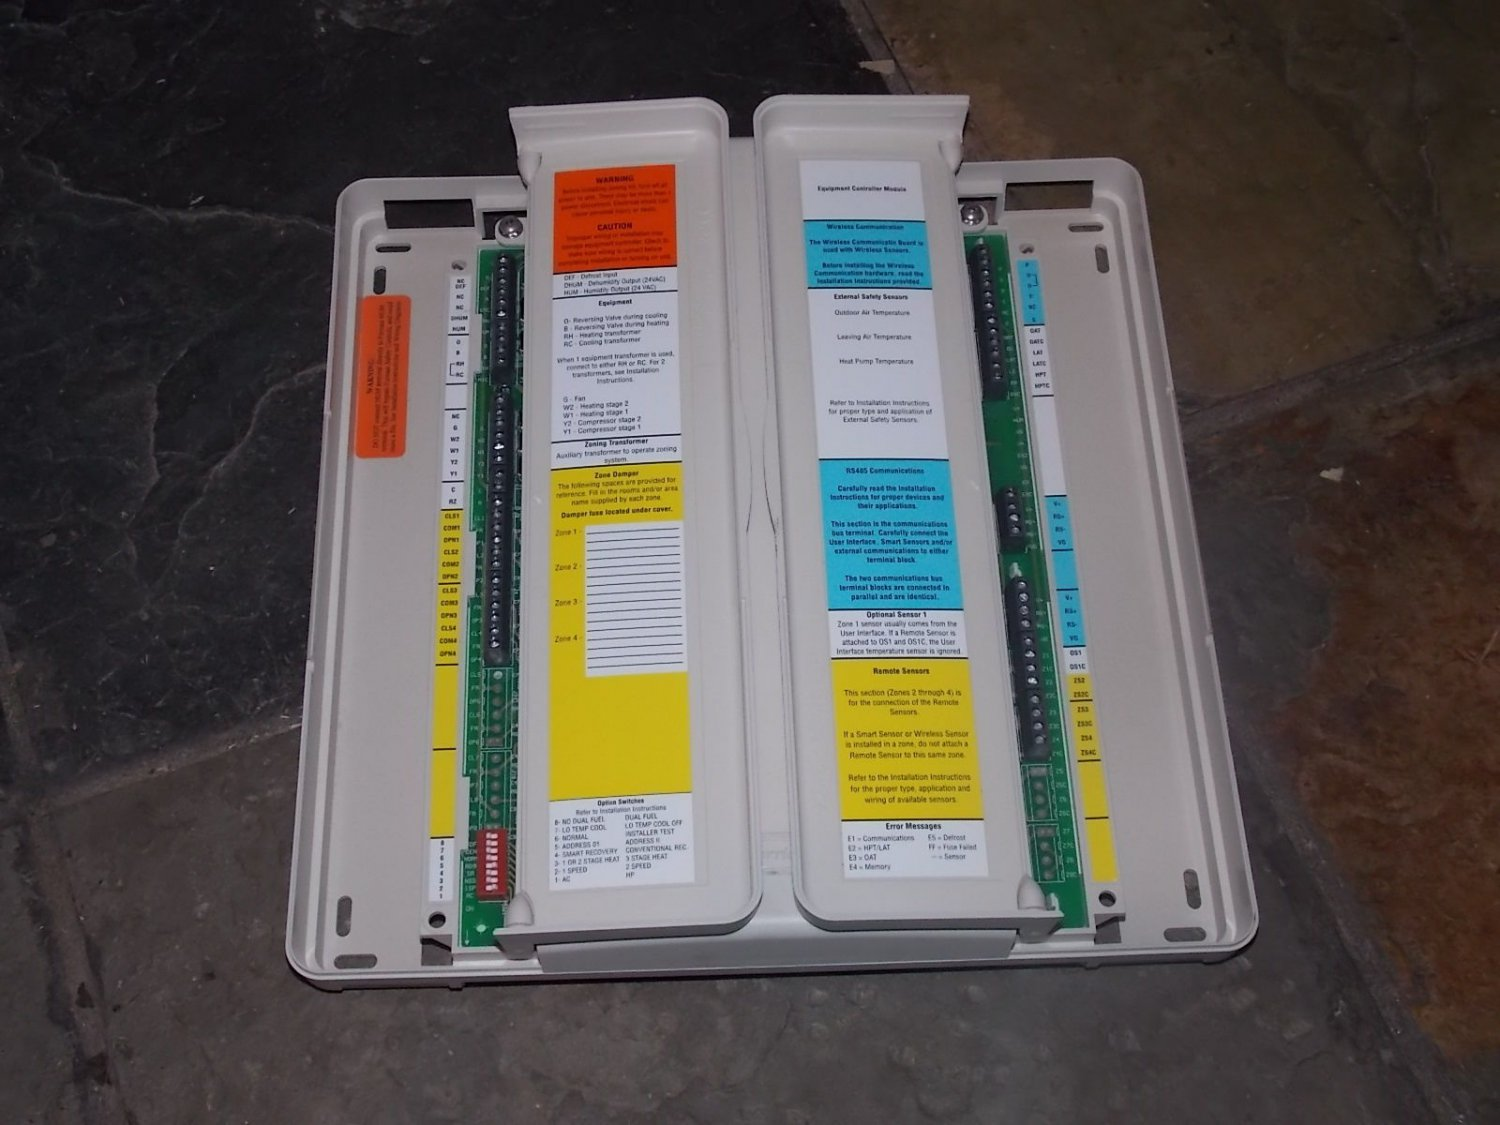 carrier zone control board. carrier 4 zone control board brand new 1pzonecc4eqcsa zonecc4eqcsa zone controller 2